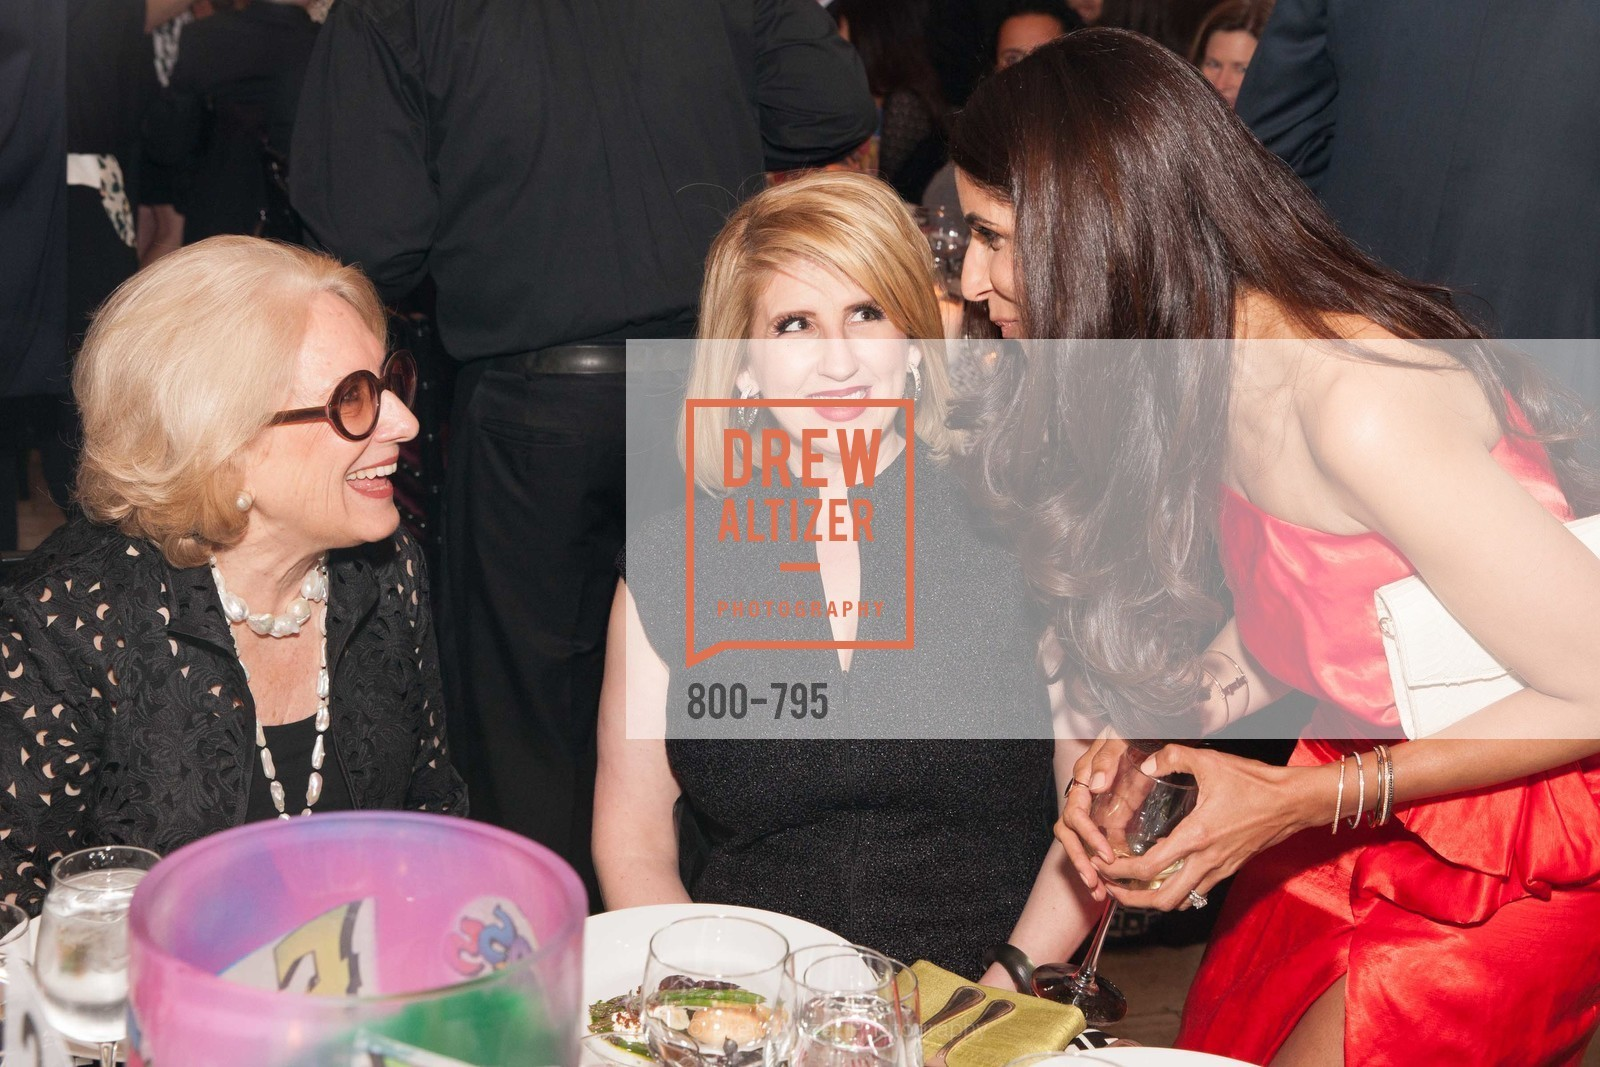 Cynthia Molstad, Roberta Economidis, Sobia Shaikh, COMPASS FAMILY SERVICES Annual Spring Benefit:  Every Family Needs A Home, US, April 22nd, 2015,Drew Altizer, Drew Altizer Photography, full-service agency, private events, San Francisco photographer, photographer california